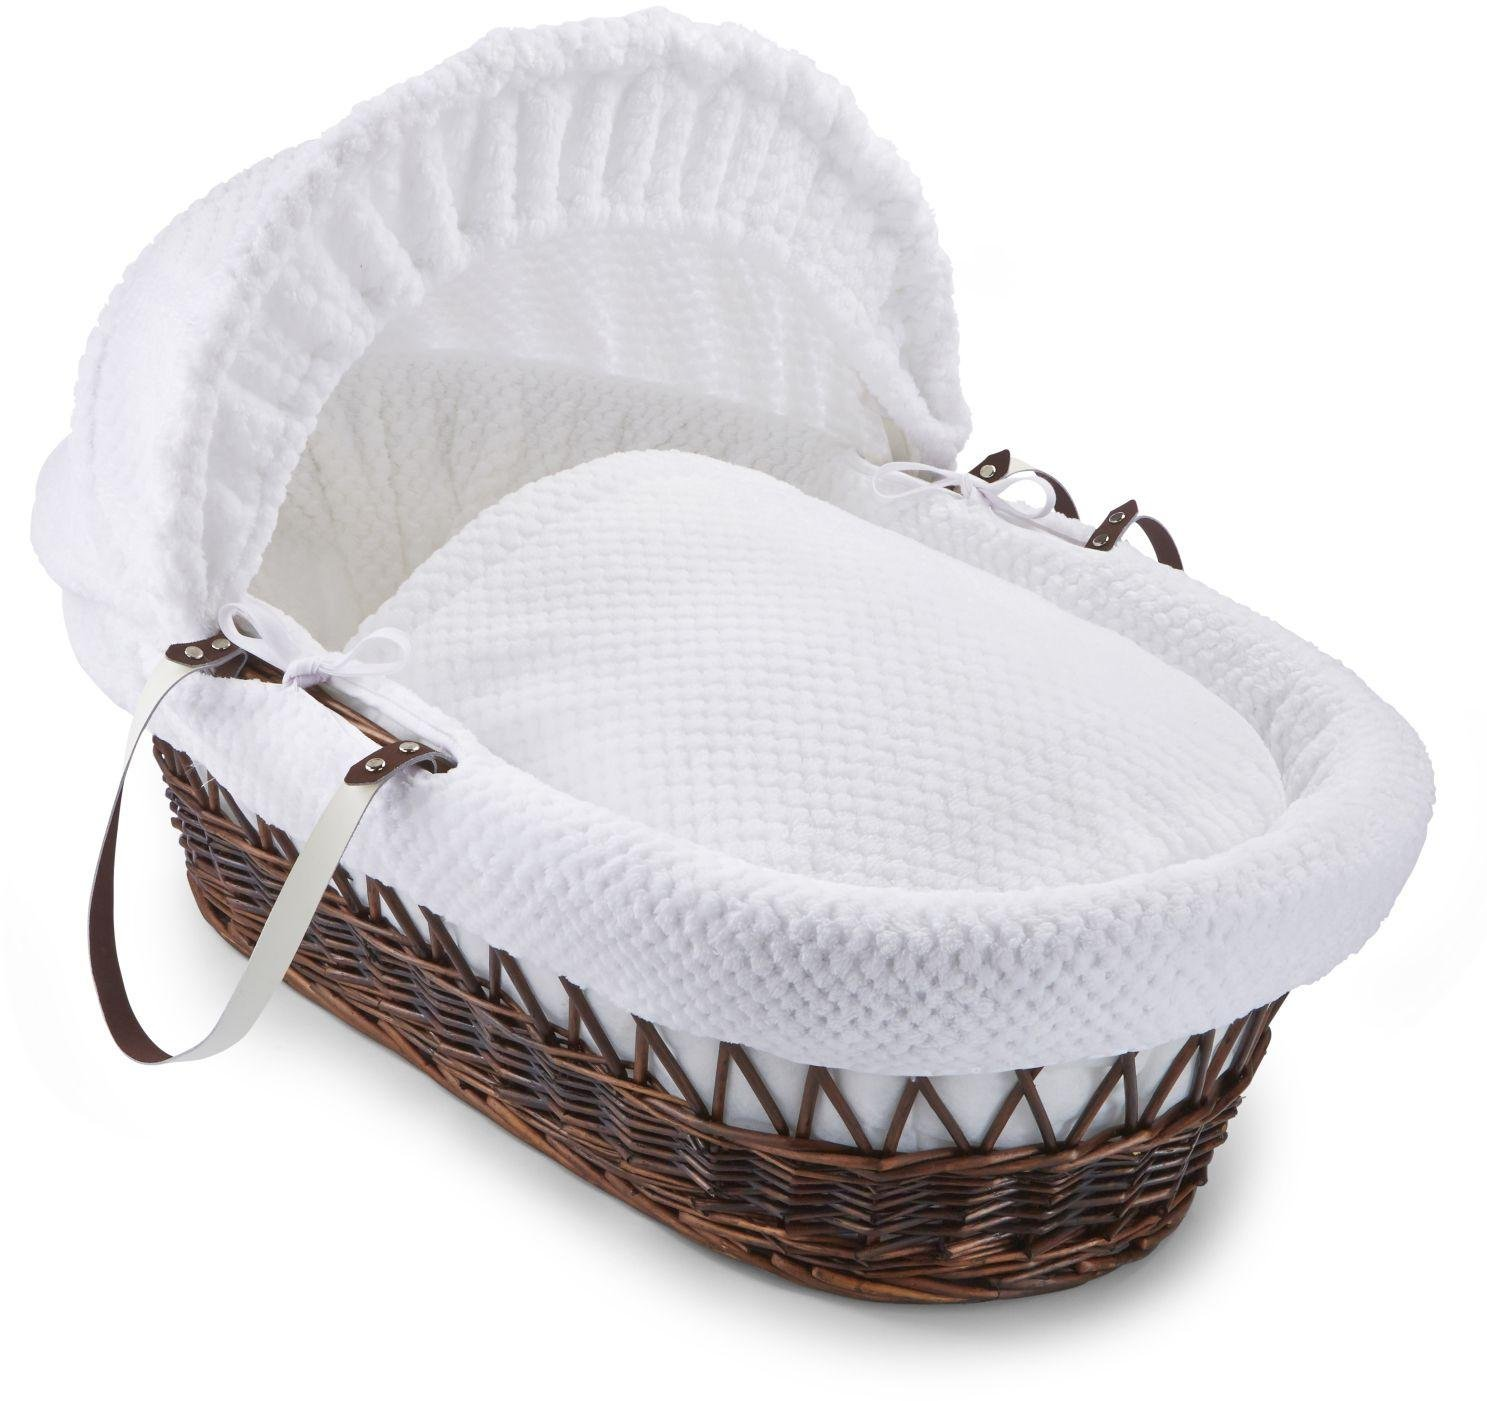 Clair de Lune Honeycomb Dark Wicker Moses Basket - White.